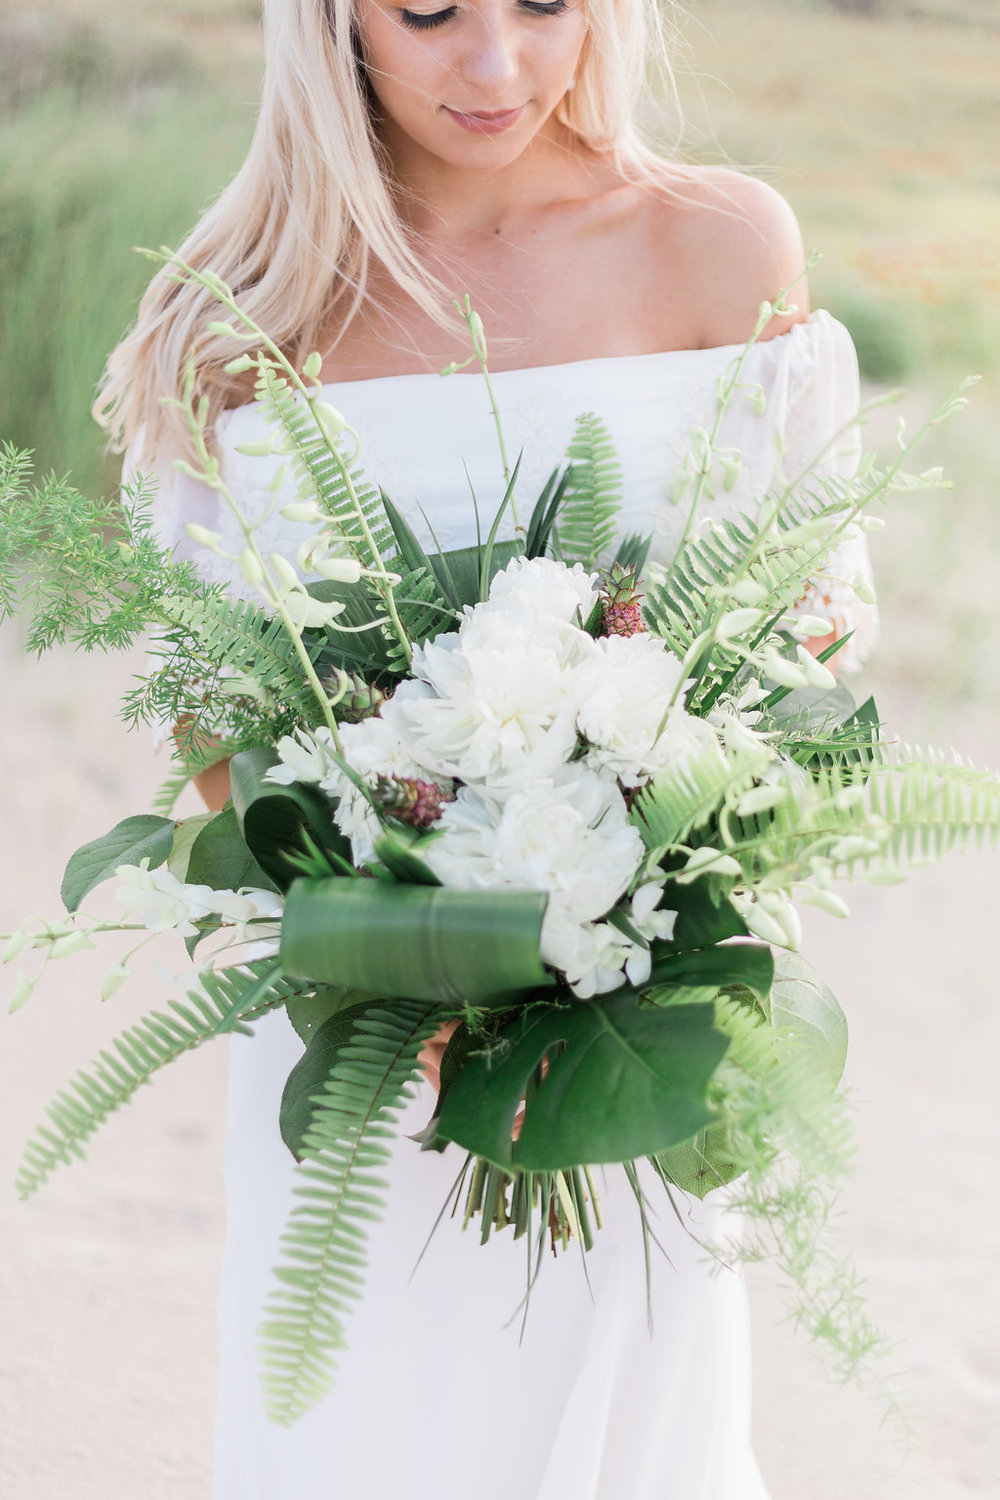 savannah-bridal-shop-last-minute-wedding-planning-details-you-should-start-on-NOW-bluebell-photography-daughters-of-simone-tybee-island-wedding-3.jpg